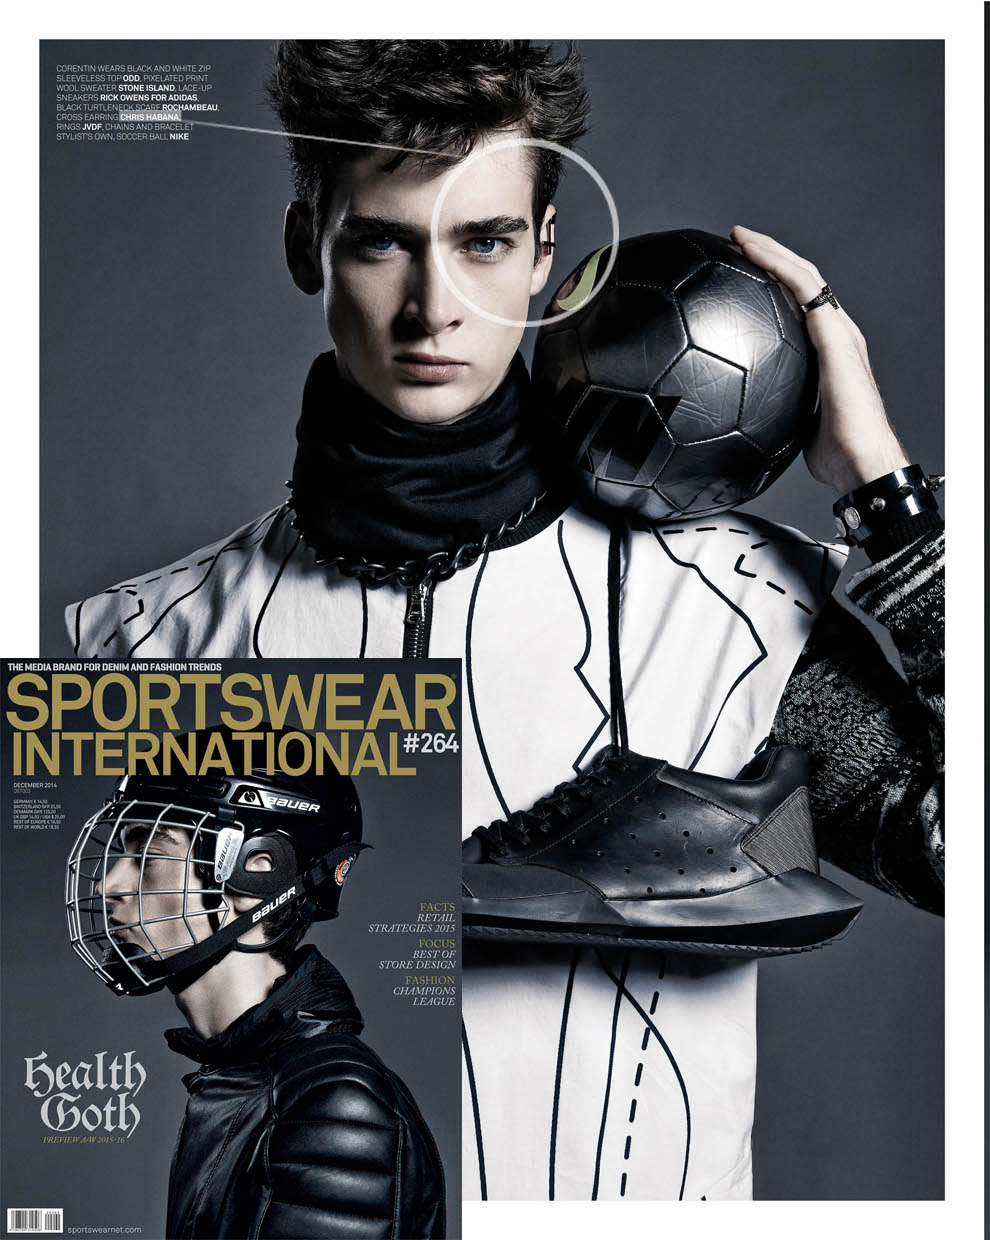 """Our """"CROSS DIVE CUFF"""" featured in issue #264 ofSPORTSWEAR INTERNATIONAL."""